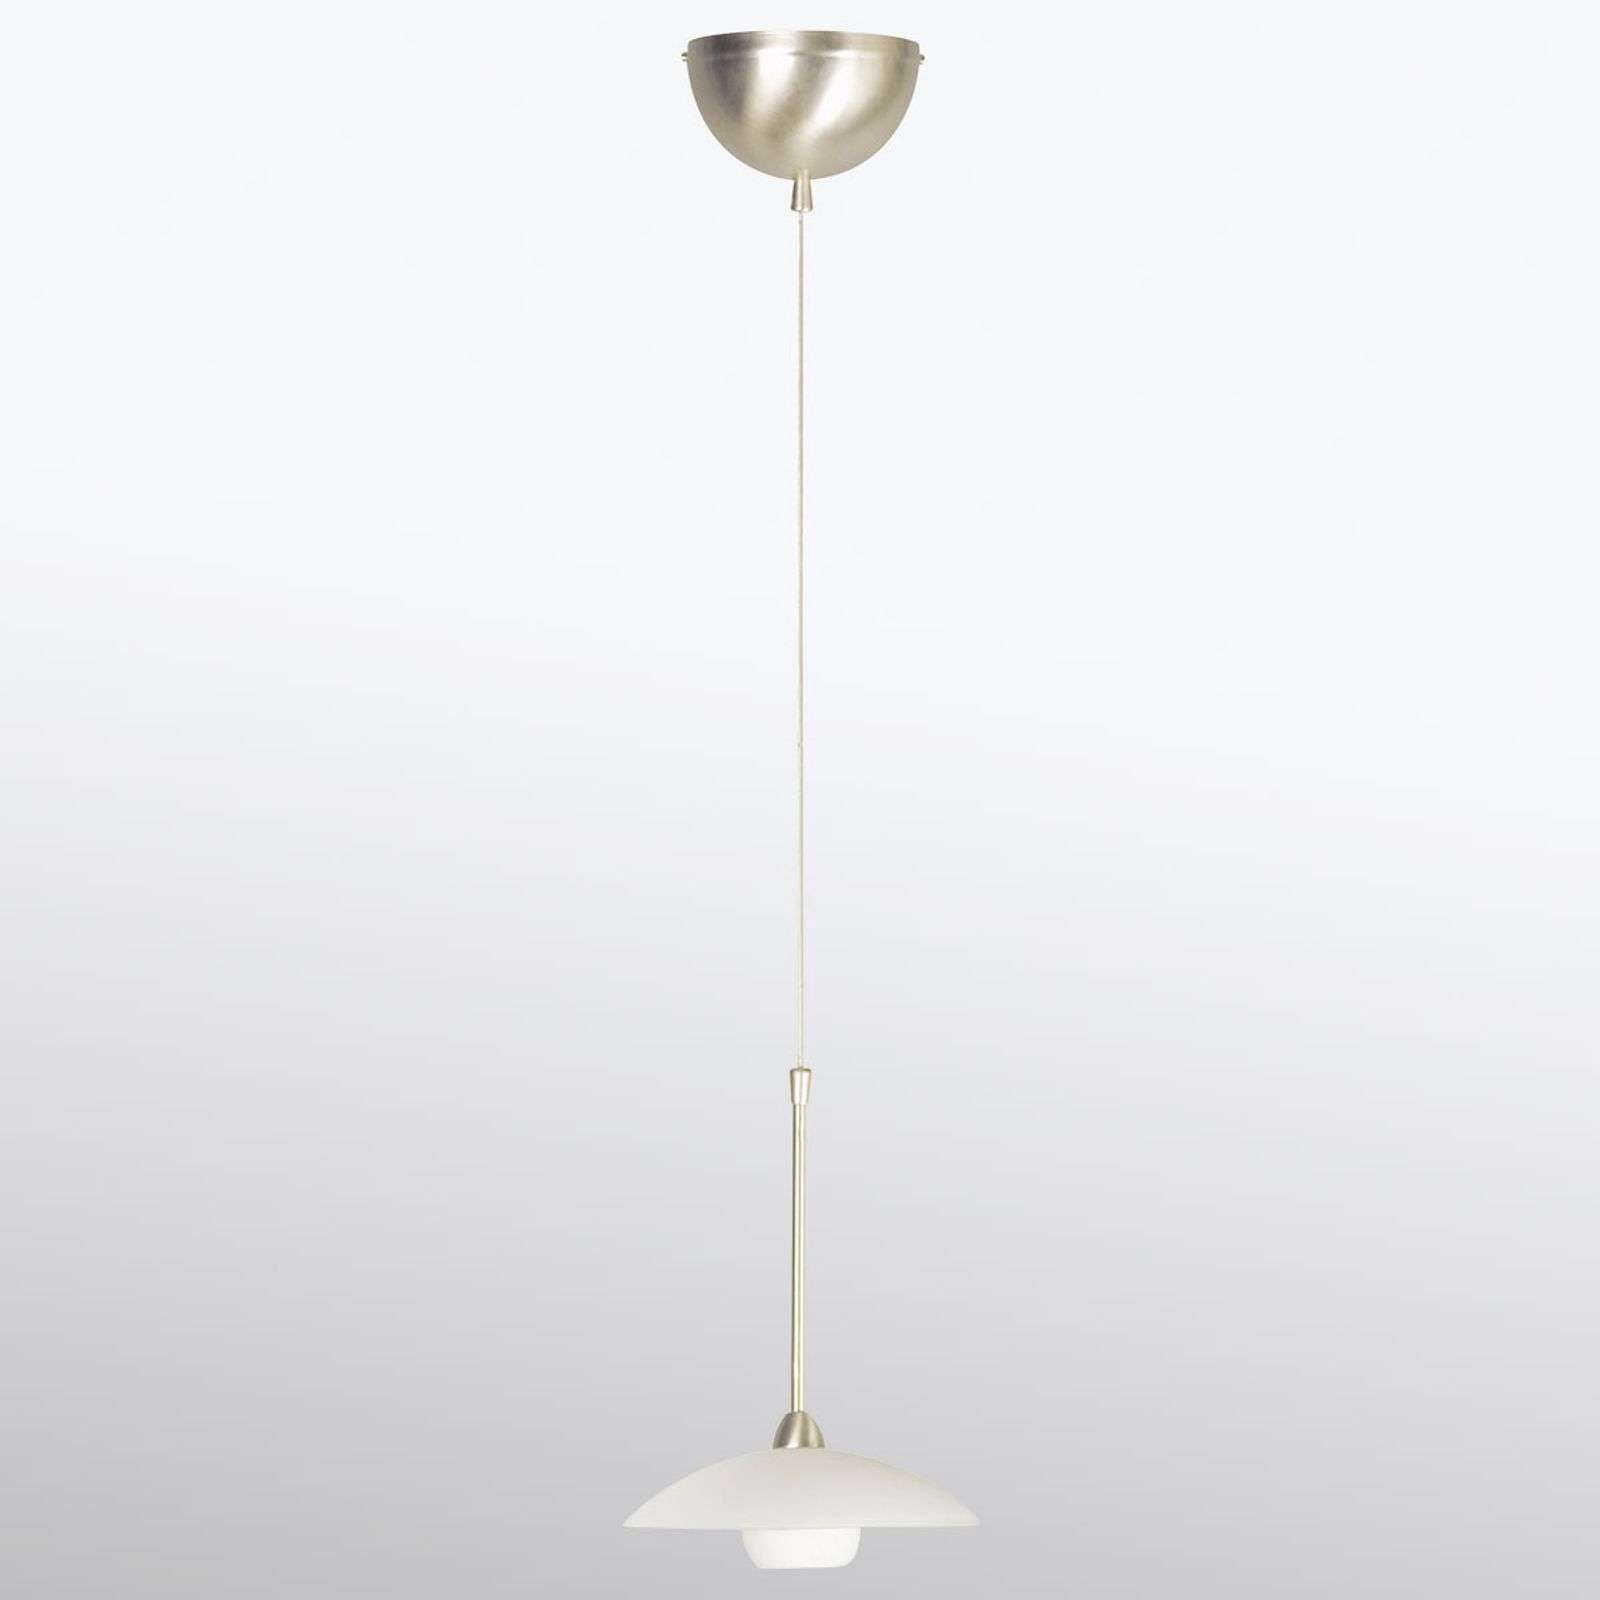 Petite suspension LED en verre Monarch